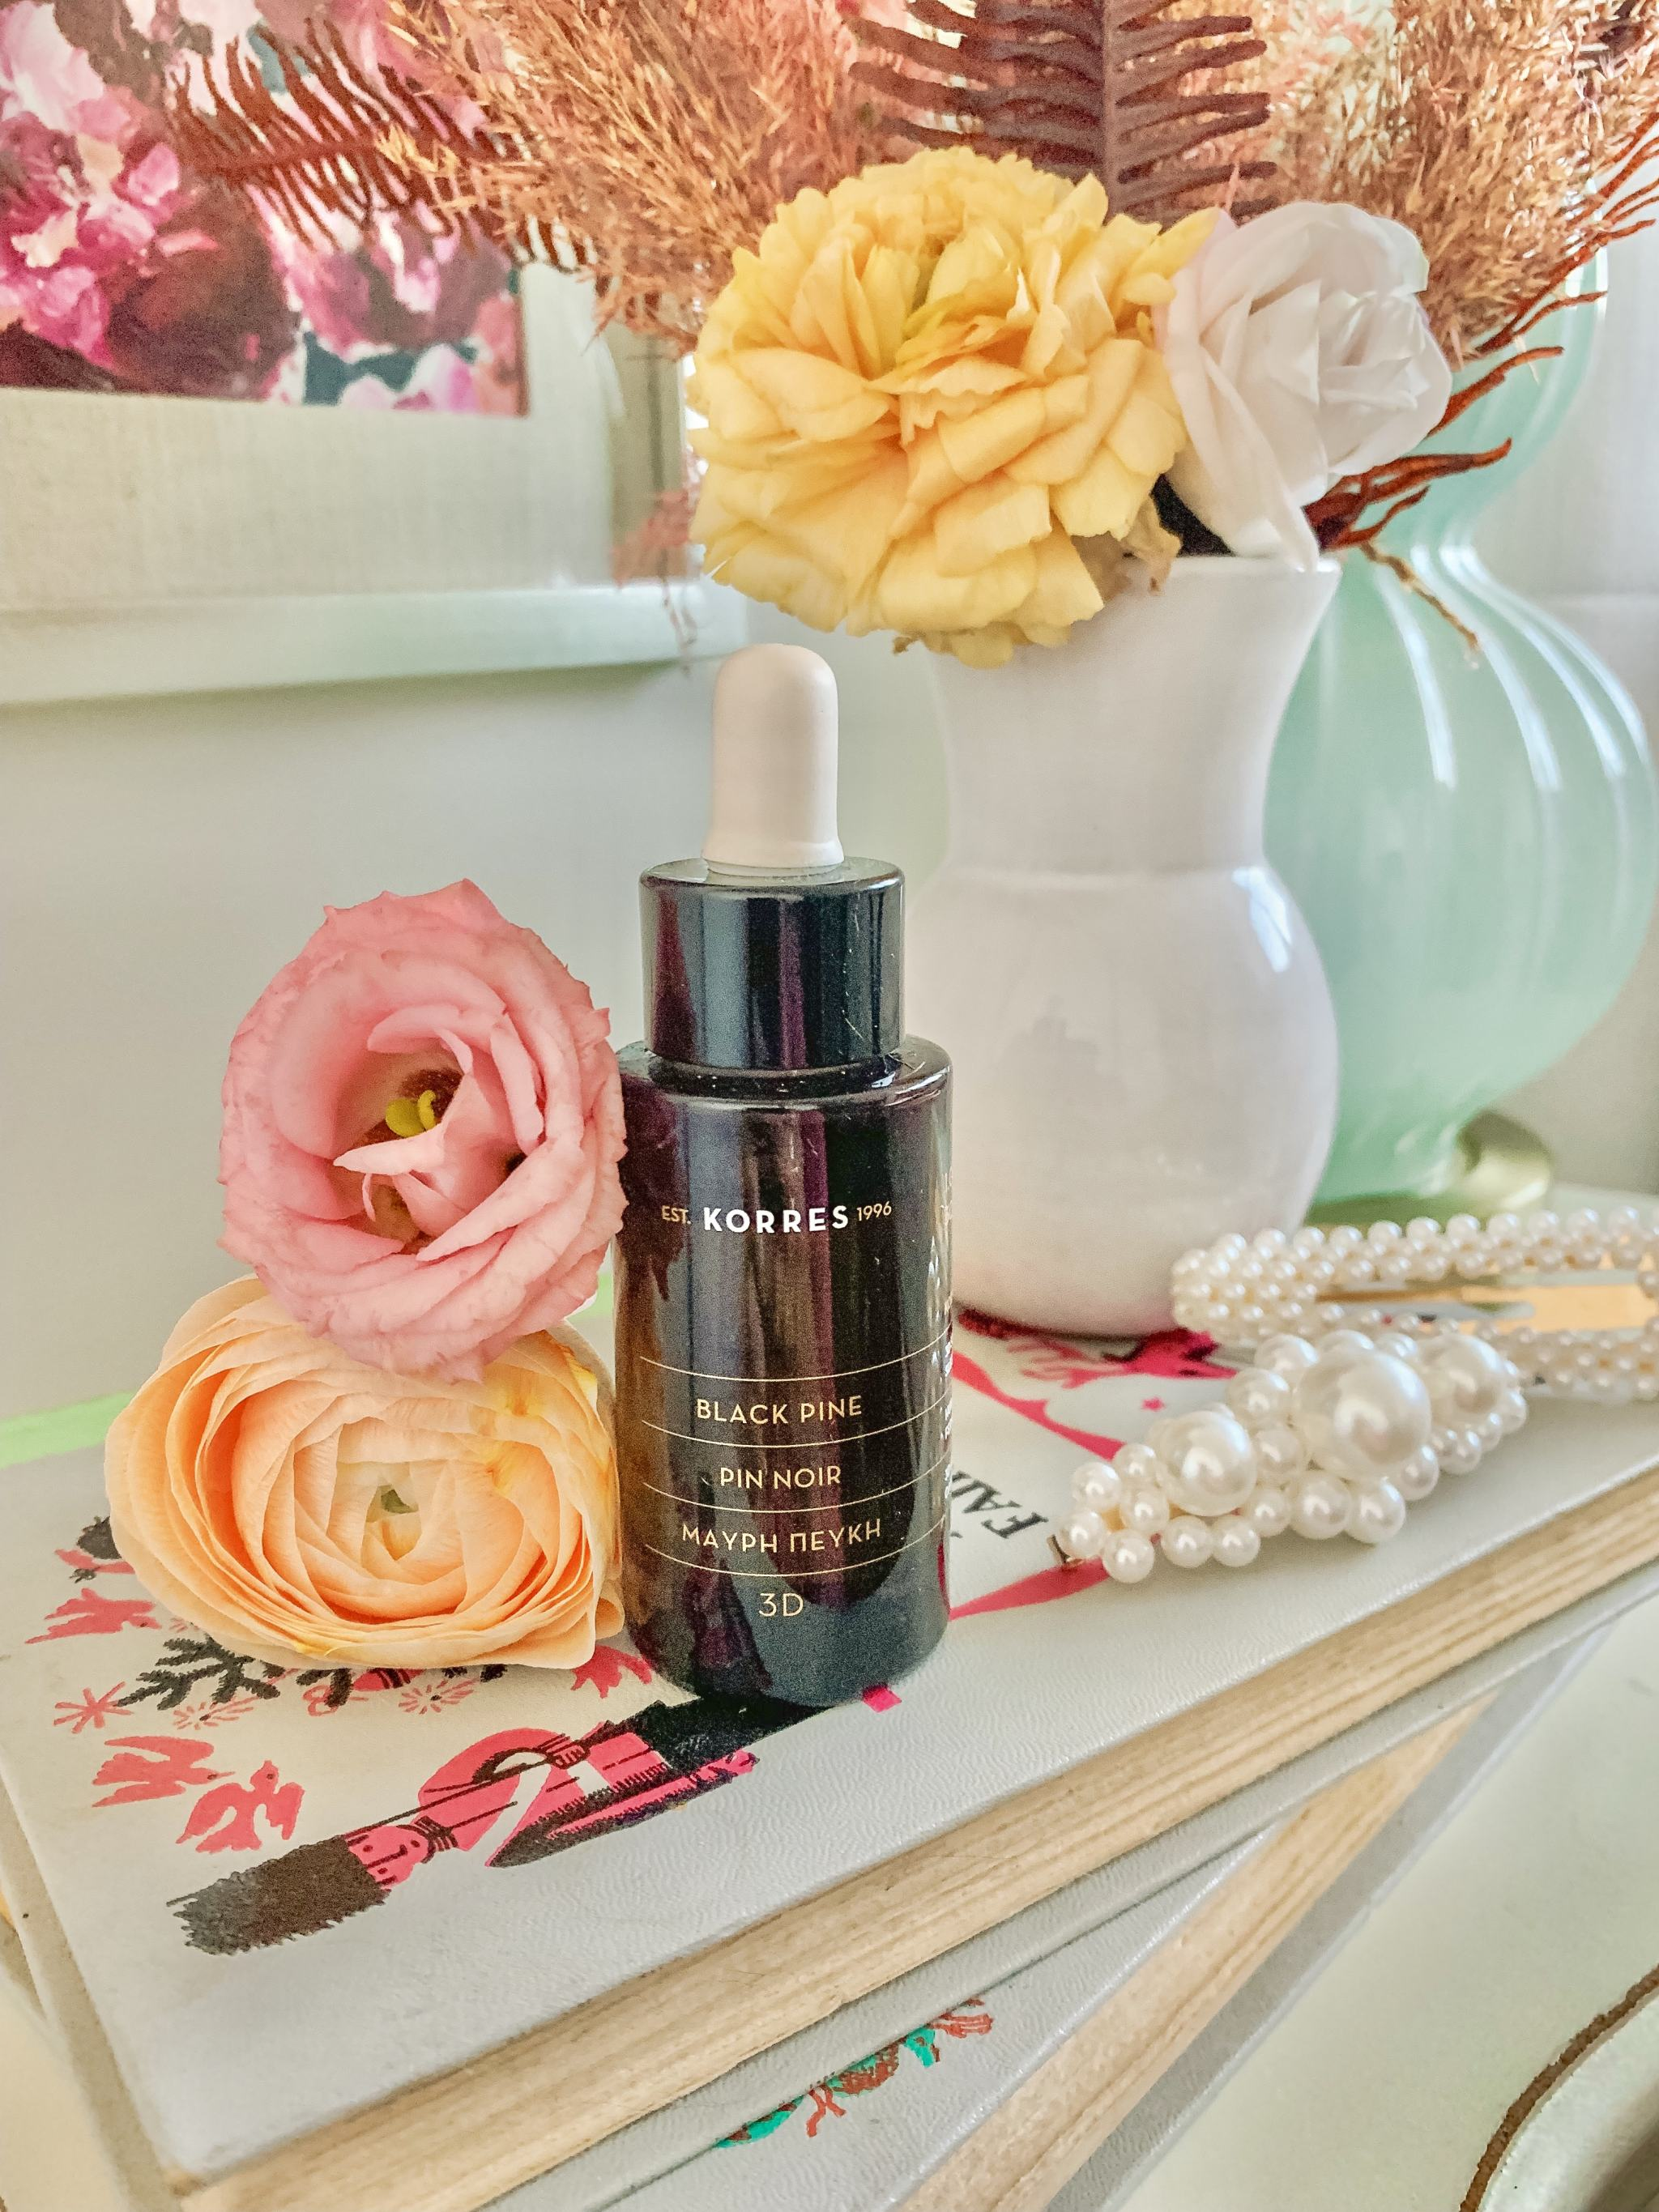 Bijuleni - 5 Products that Rejuvenate Skin Overnight-Korres Black Pine 3D Sculpting & Firming Sleeping Oil Review